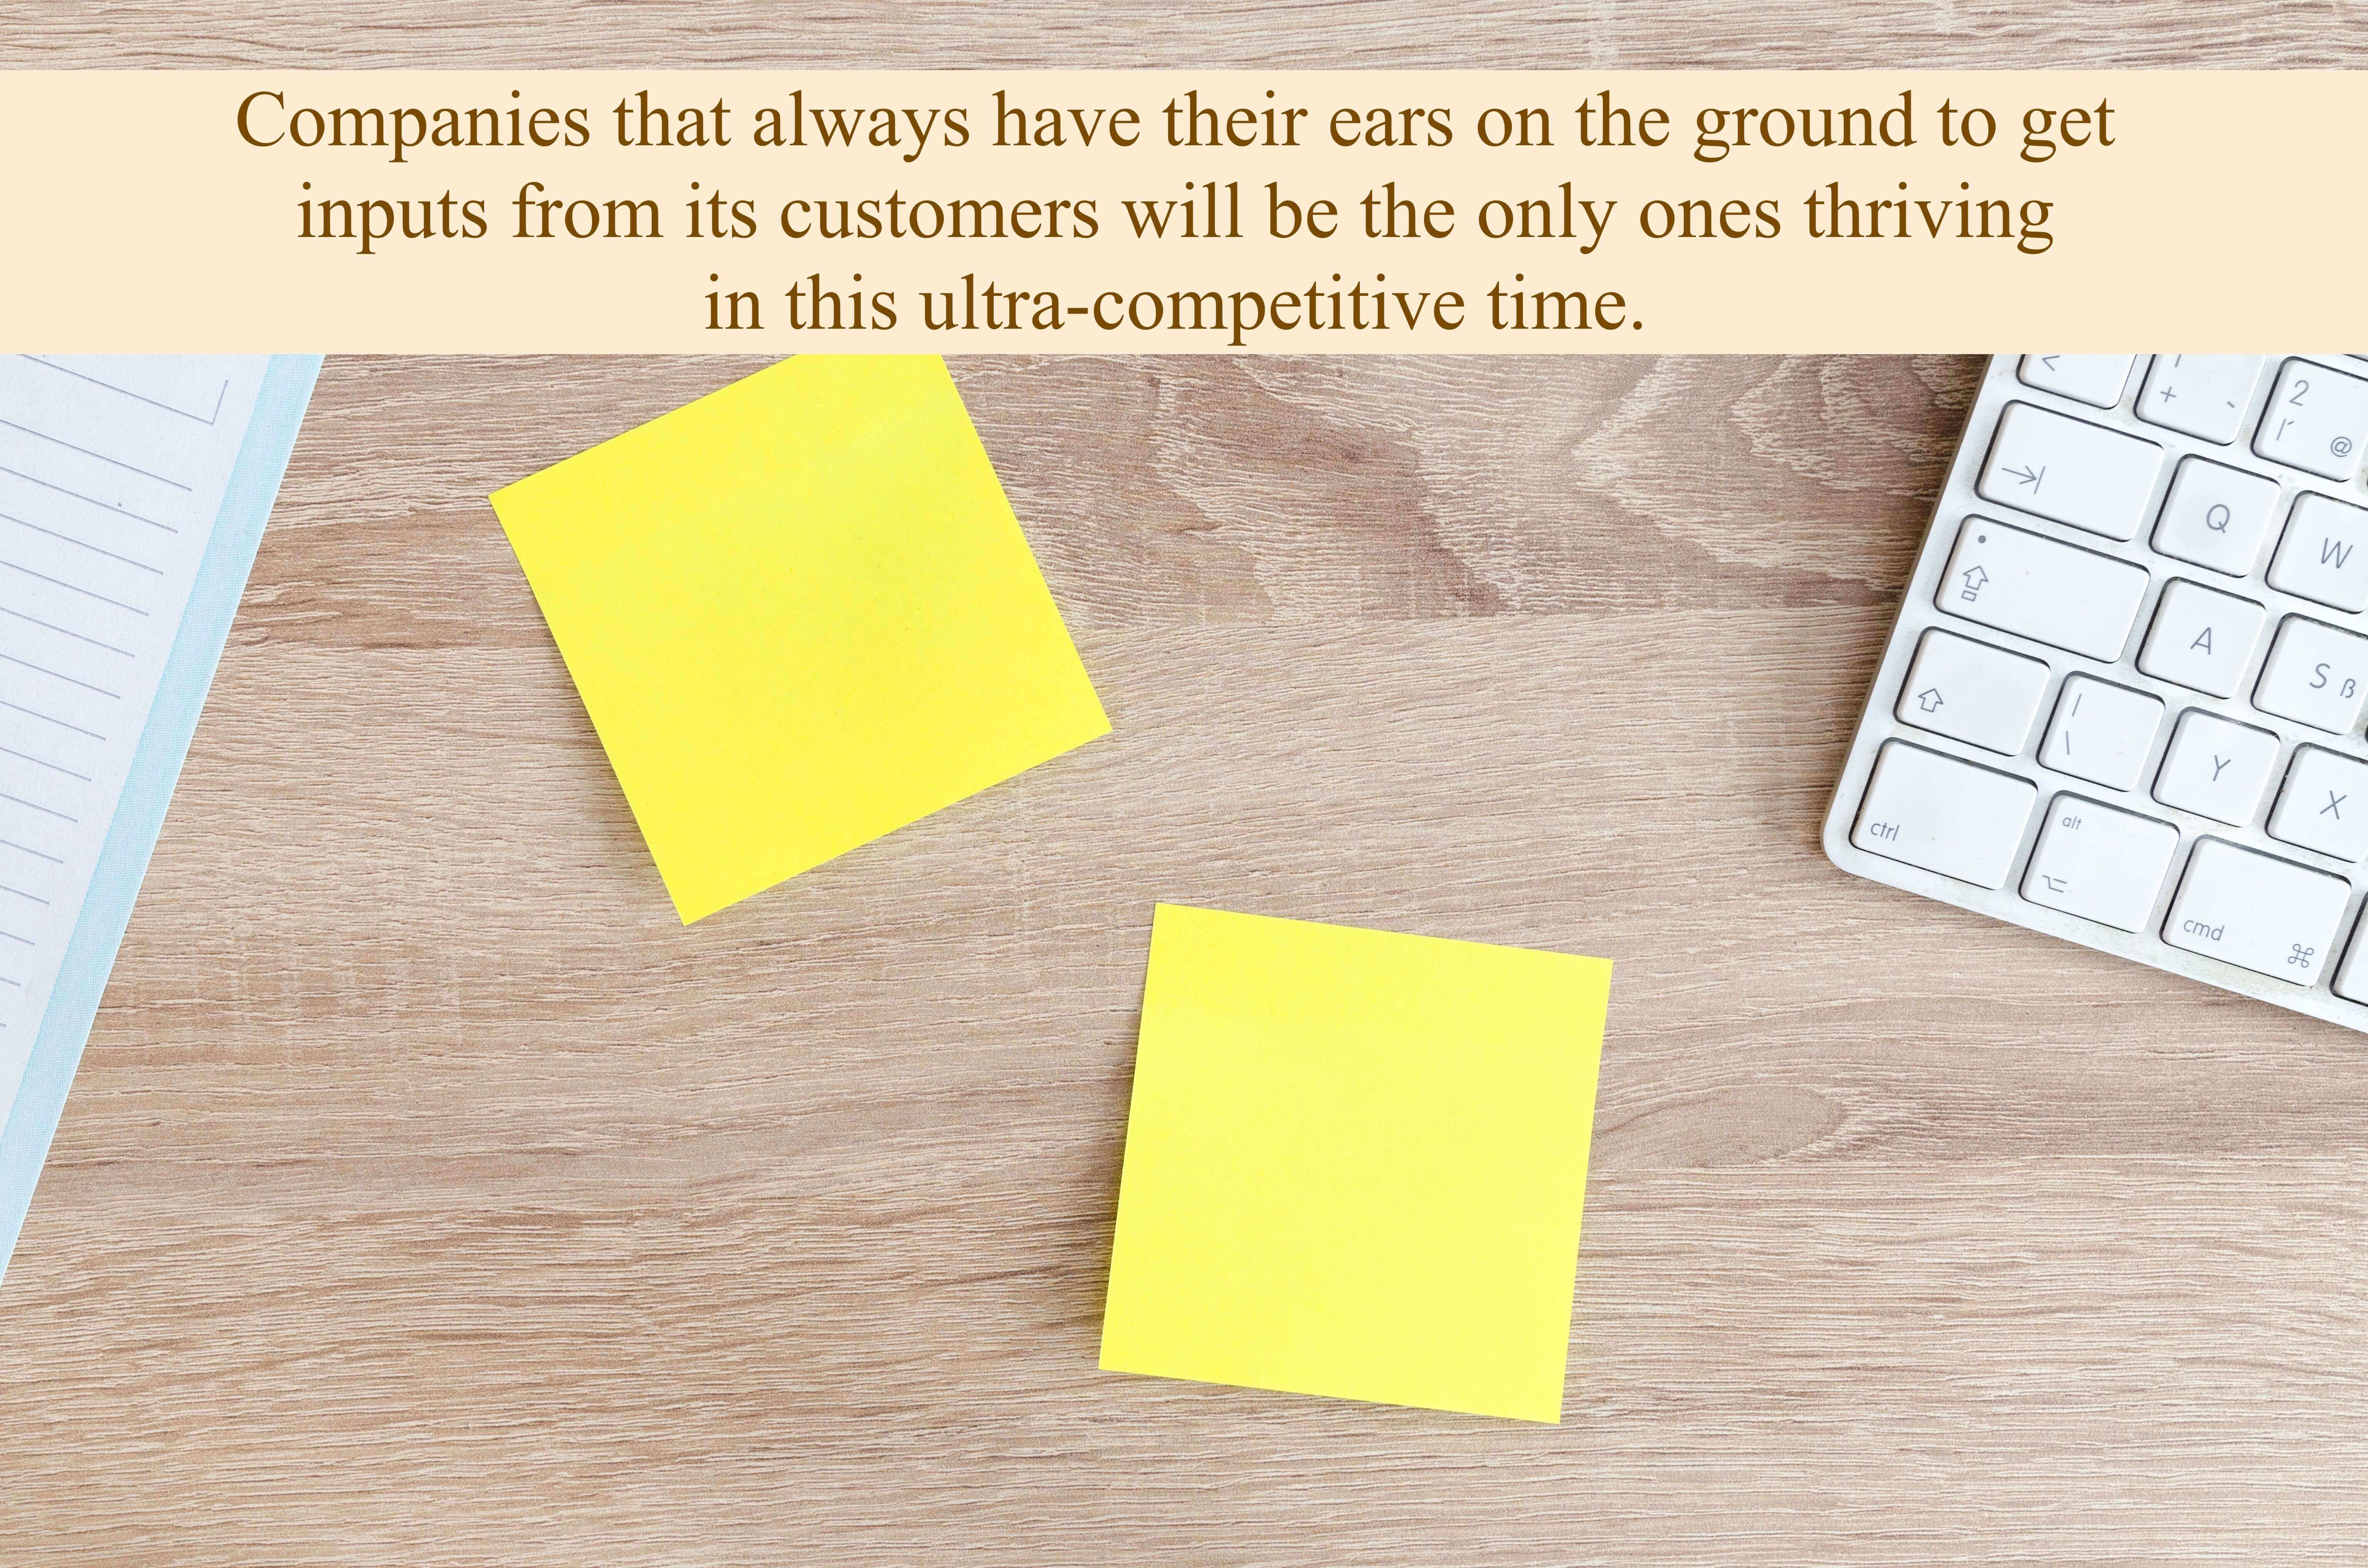 Companies that always have their ears on the ground to get inputs from its customers will be the only ones thriving in this ultra-competitive time.